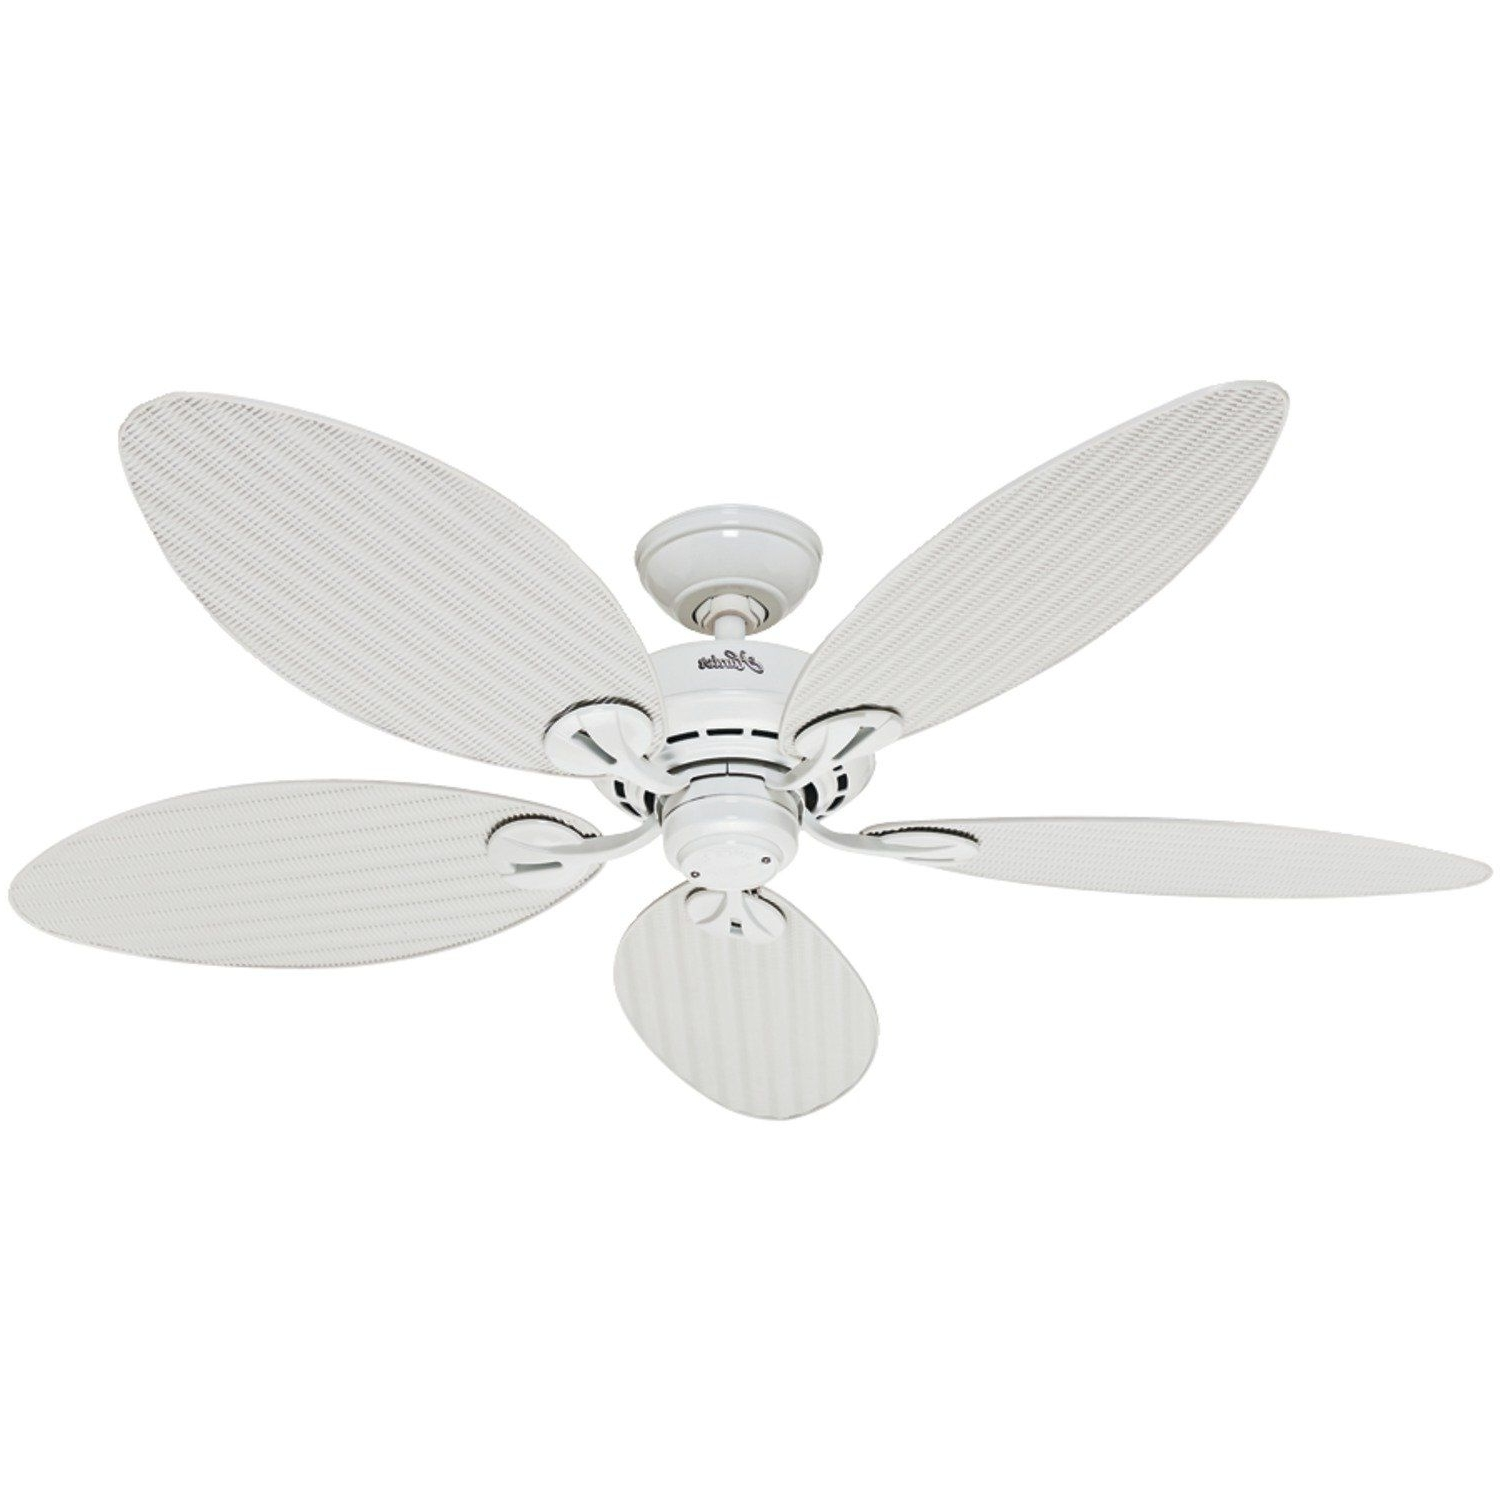 Outdoor Ceiling Fans With Plastic Blades In Current Hunter Fan Company 54097 Bayview 54 Inch Etl Damp Listed Ceiling Fan (View 11 of 20)